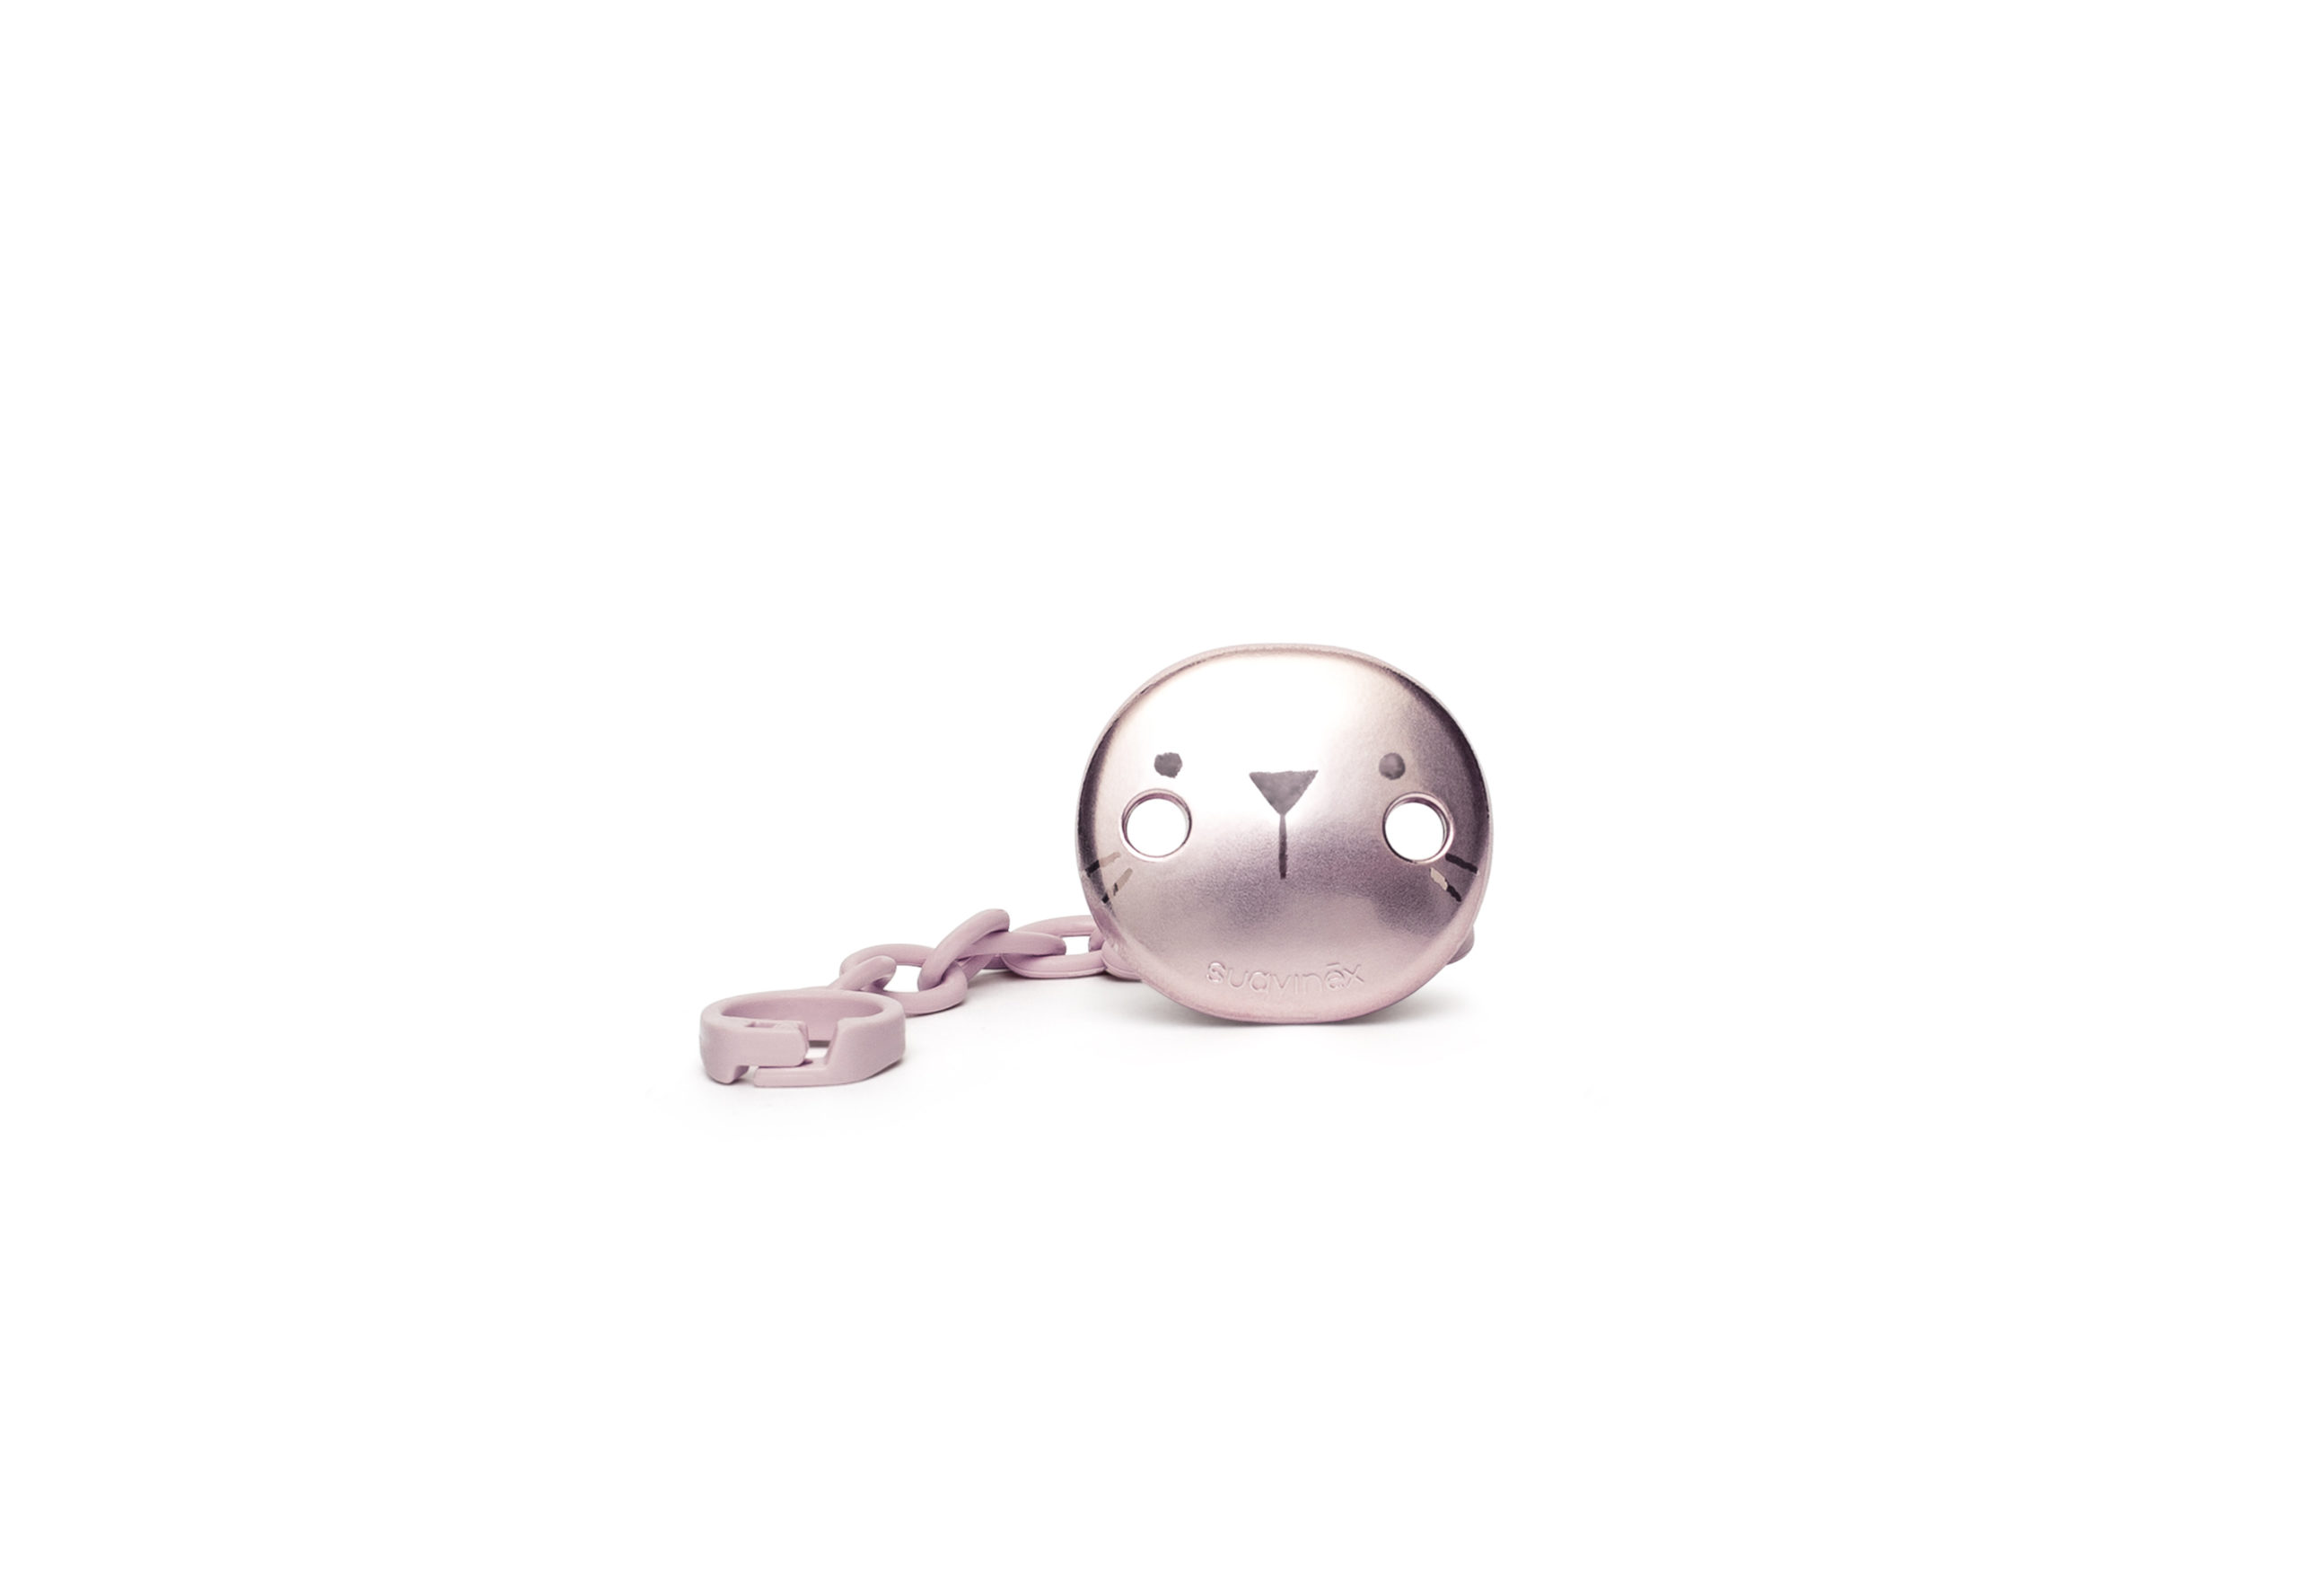 8426420068727_S PREMIUM SOOTHER CHAIN HYGGE PK L1